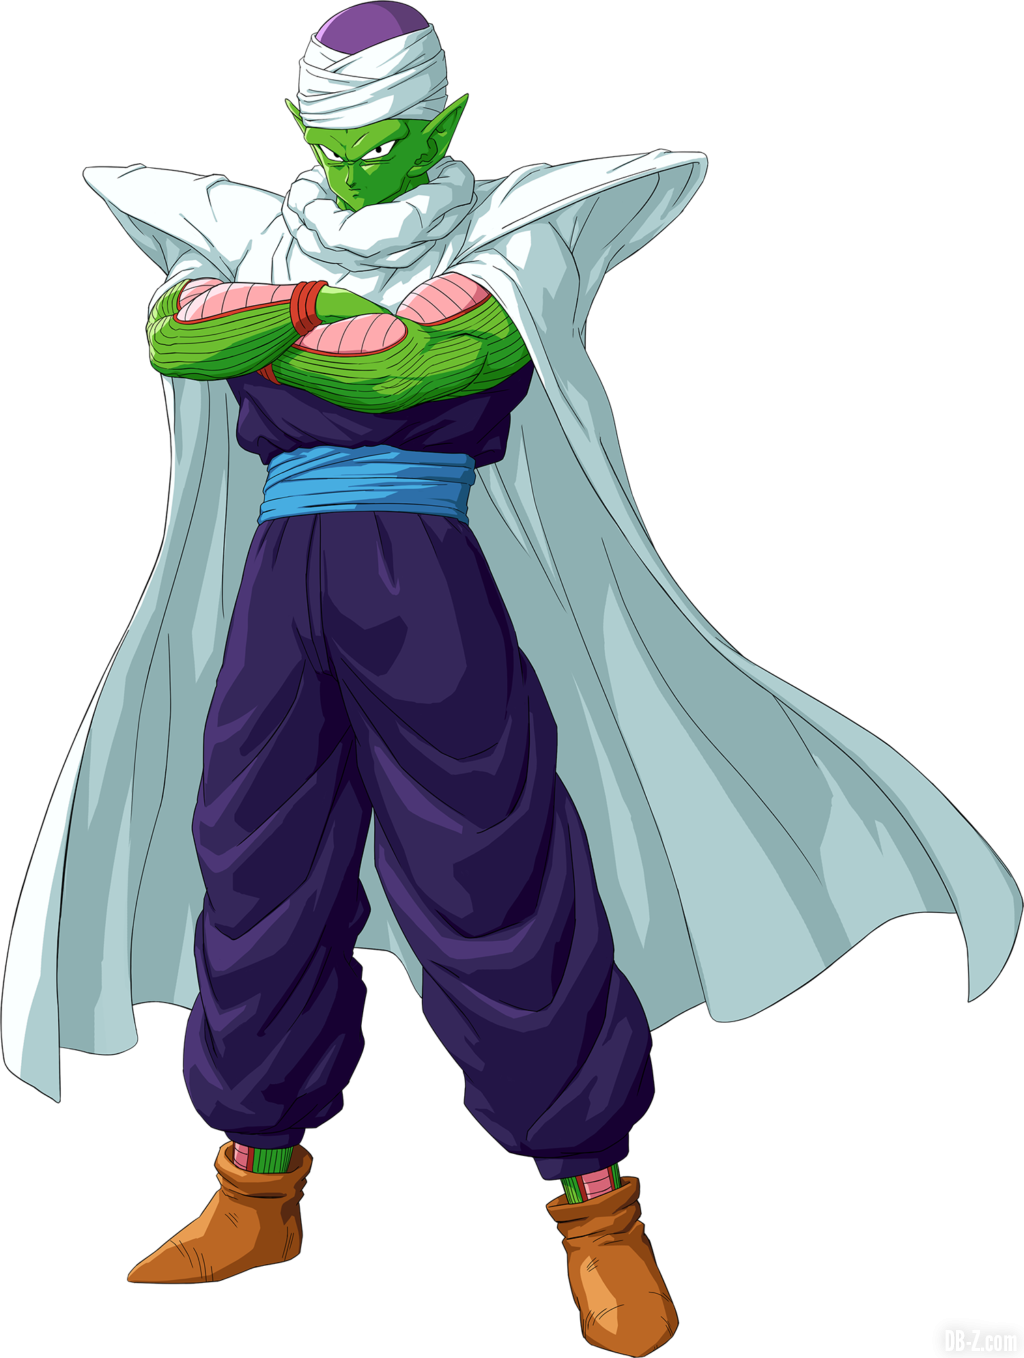 Piccolo (Dragon Ball Z Kakarot)